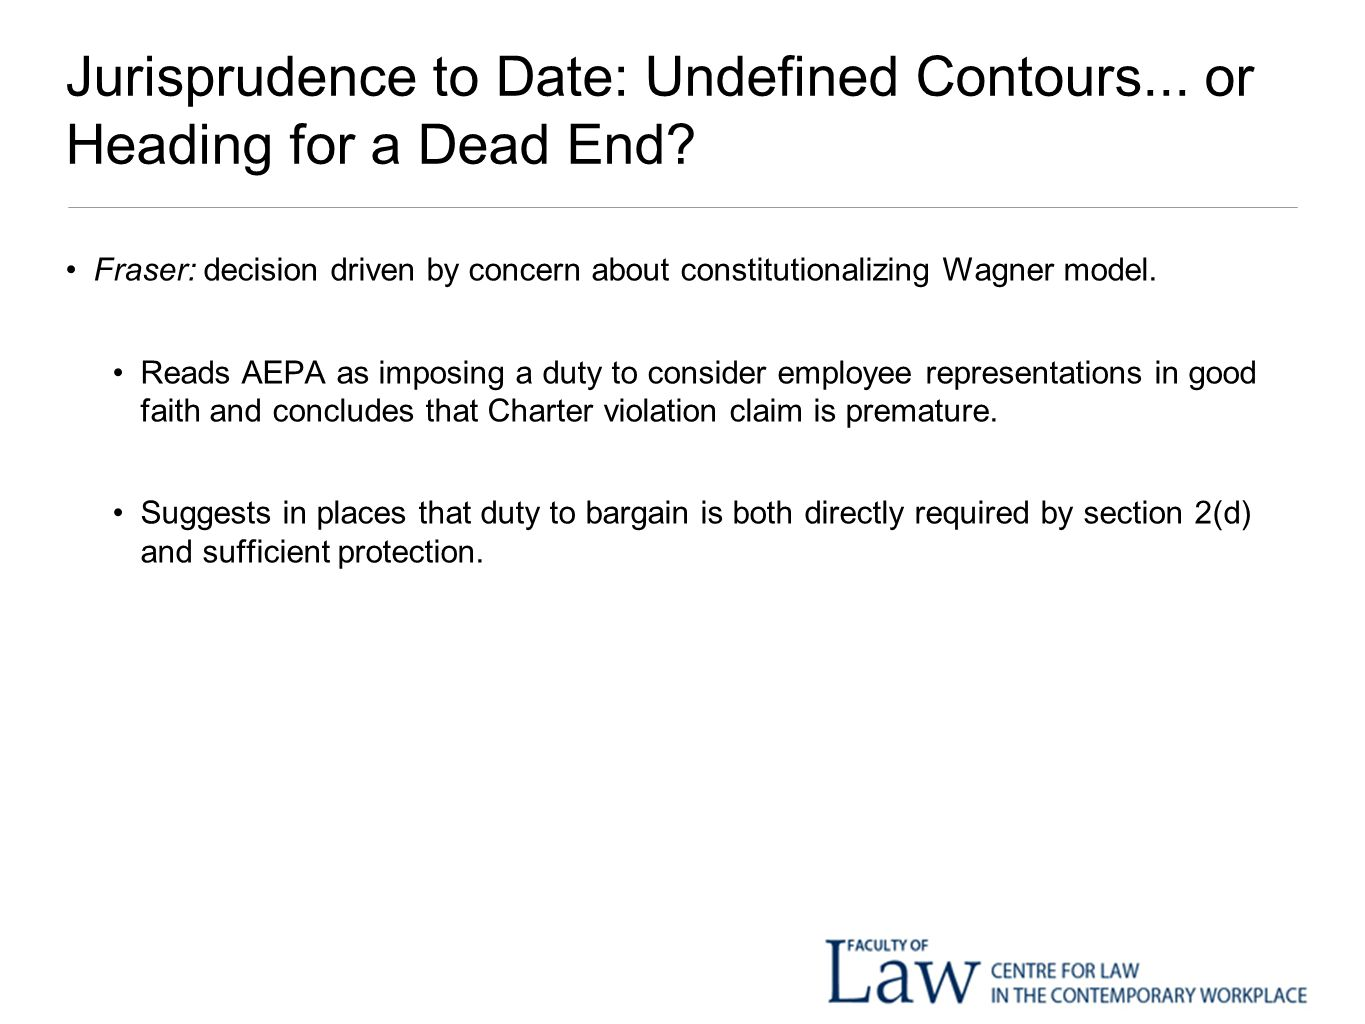 Jurisprudence to Date: Undefined Contours... or Heading for a Dead End.